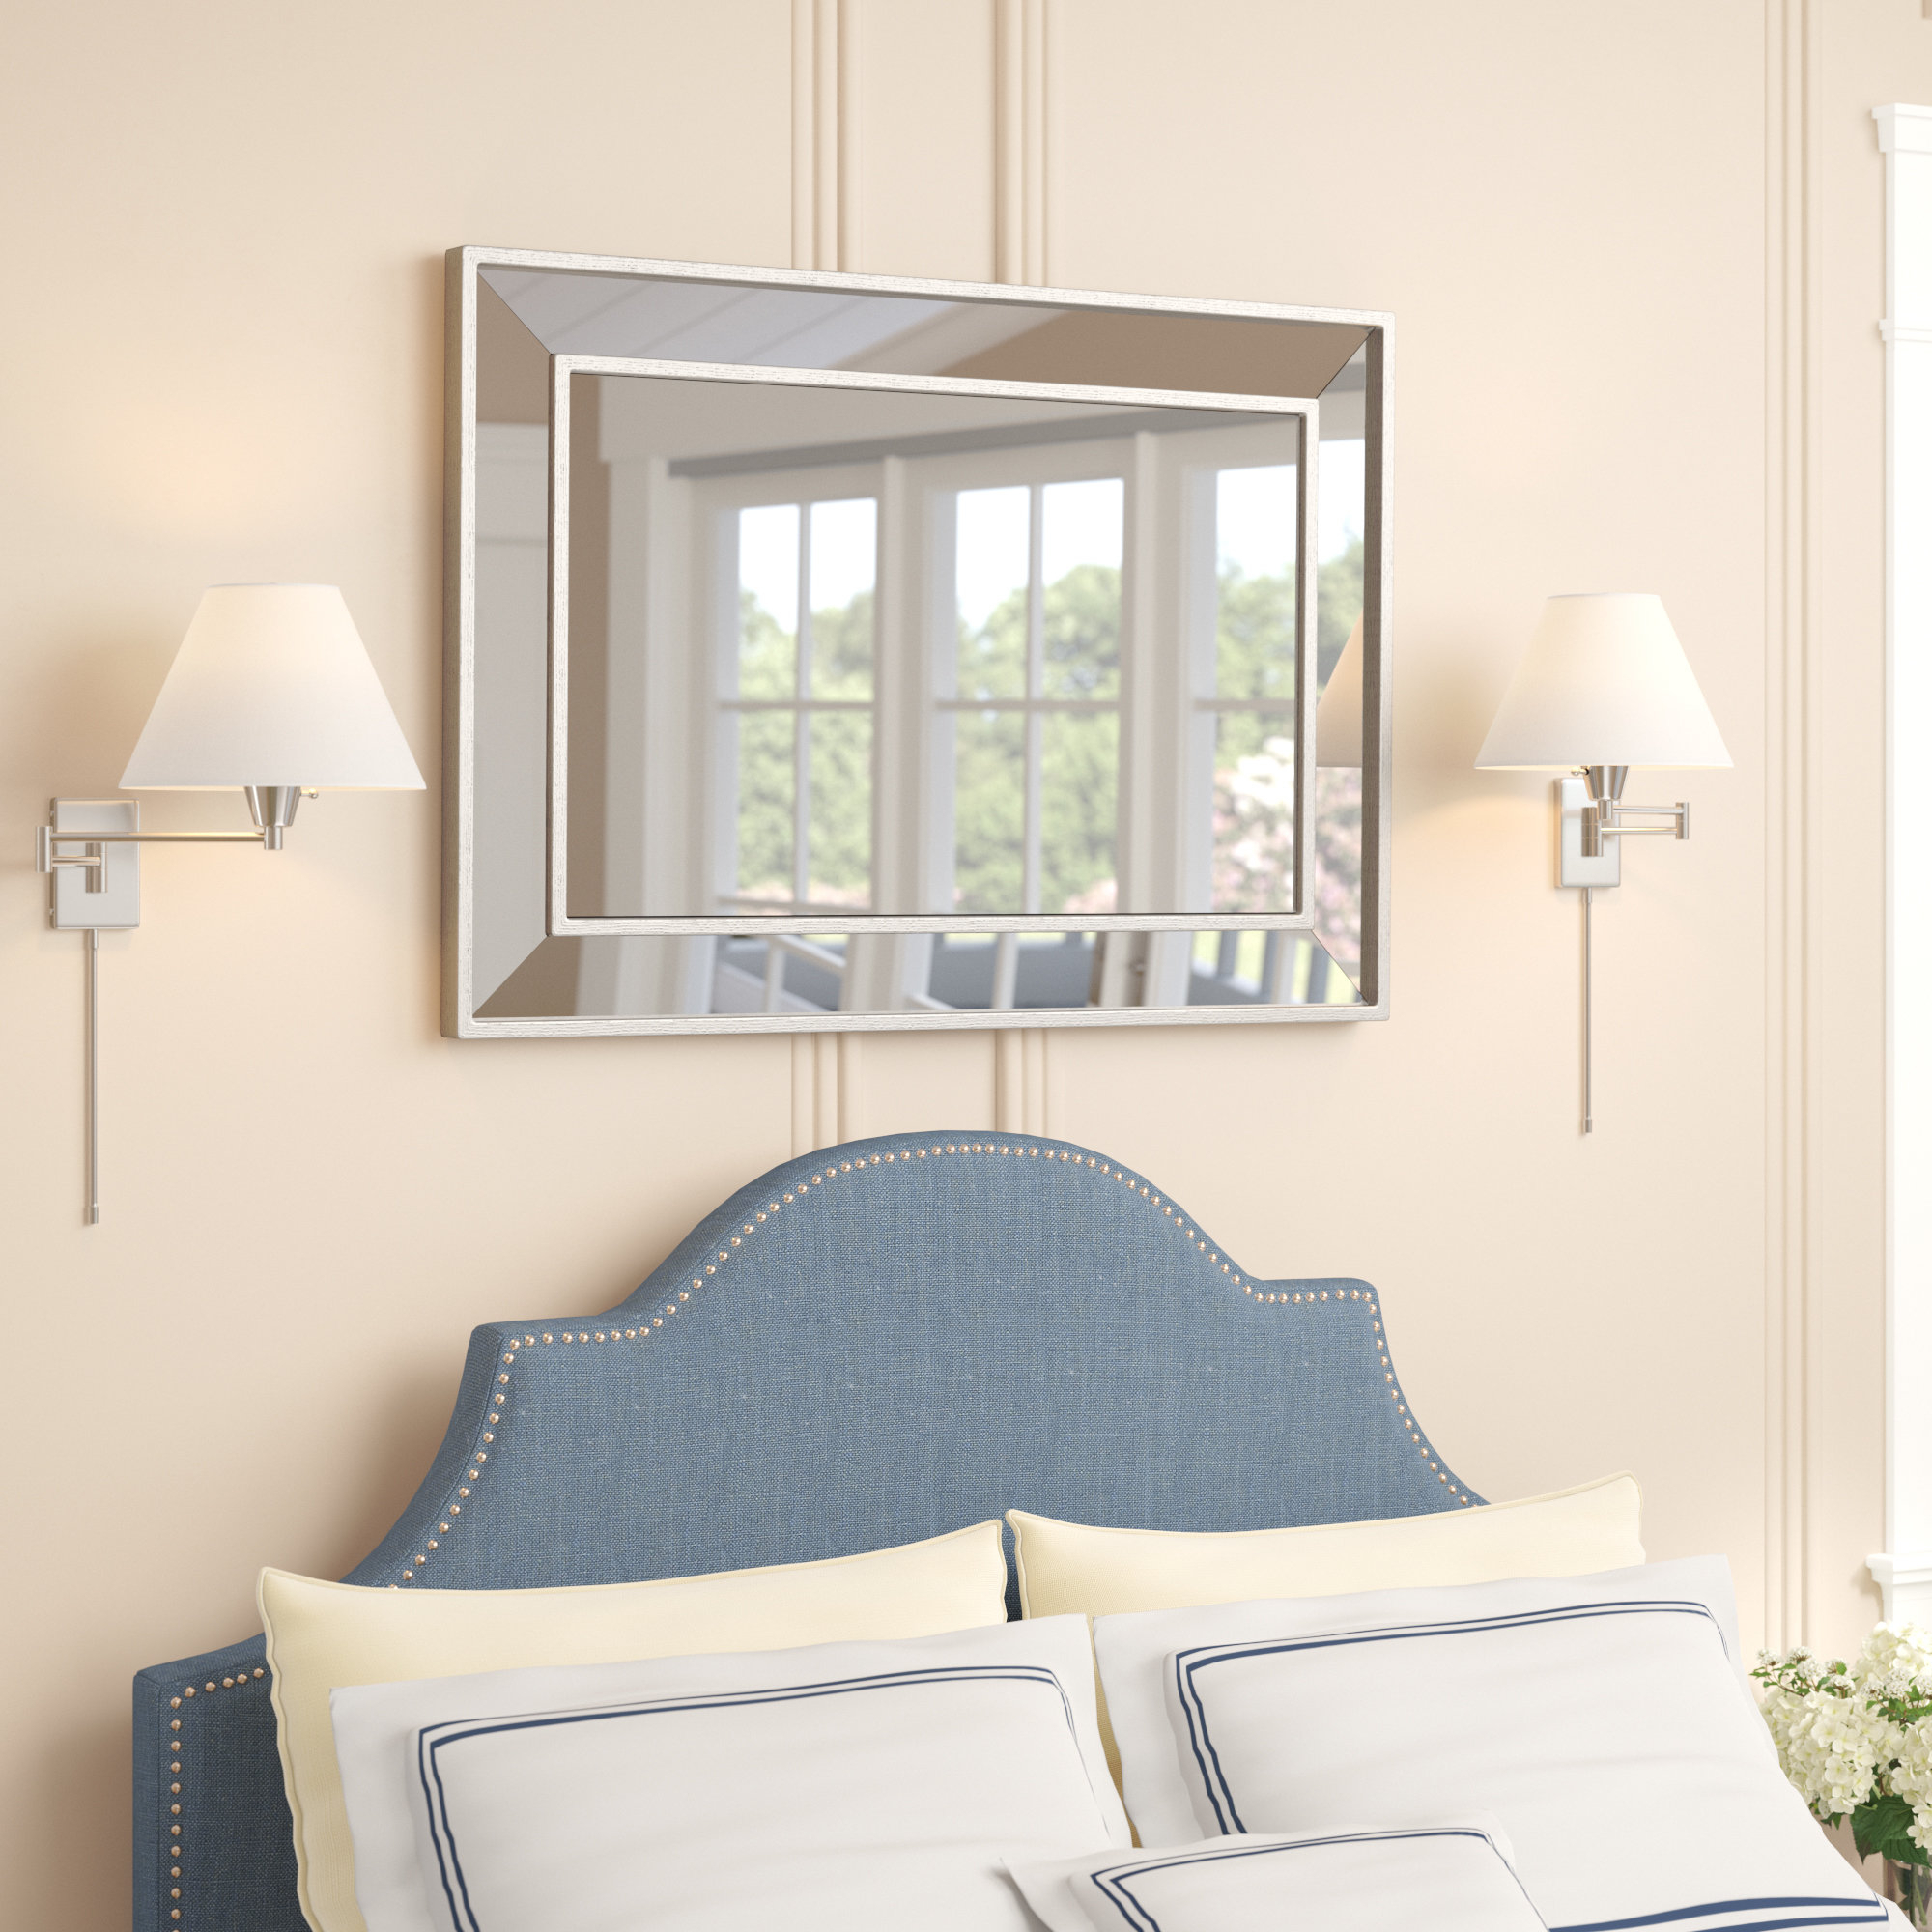 Darby Home Co Tutuala Traditional Beveled Wall Mirror Pertaining To Tutuala Traditional Beveled Accent Mirrors (View 4 of 20)